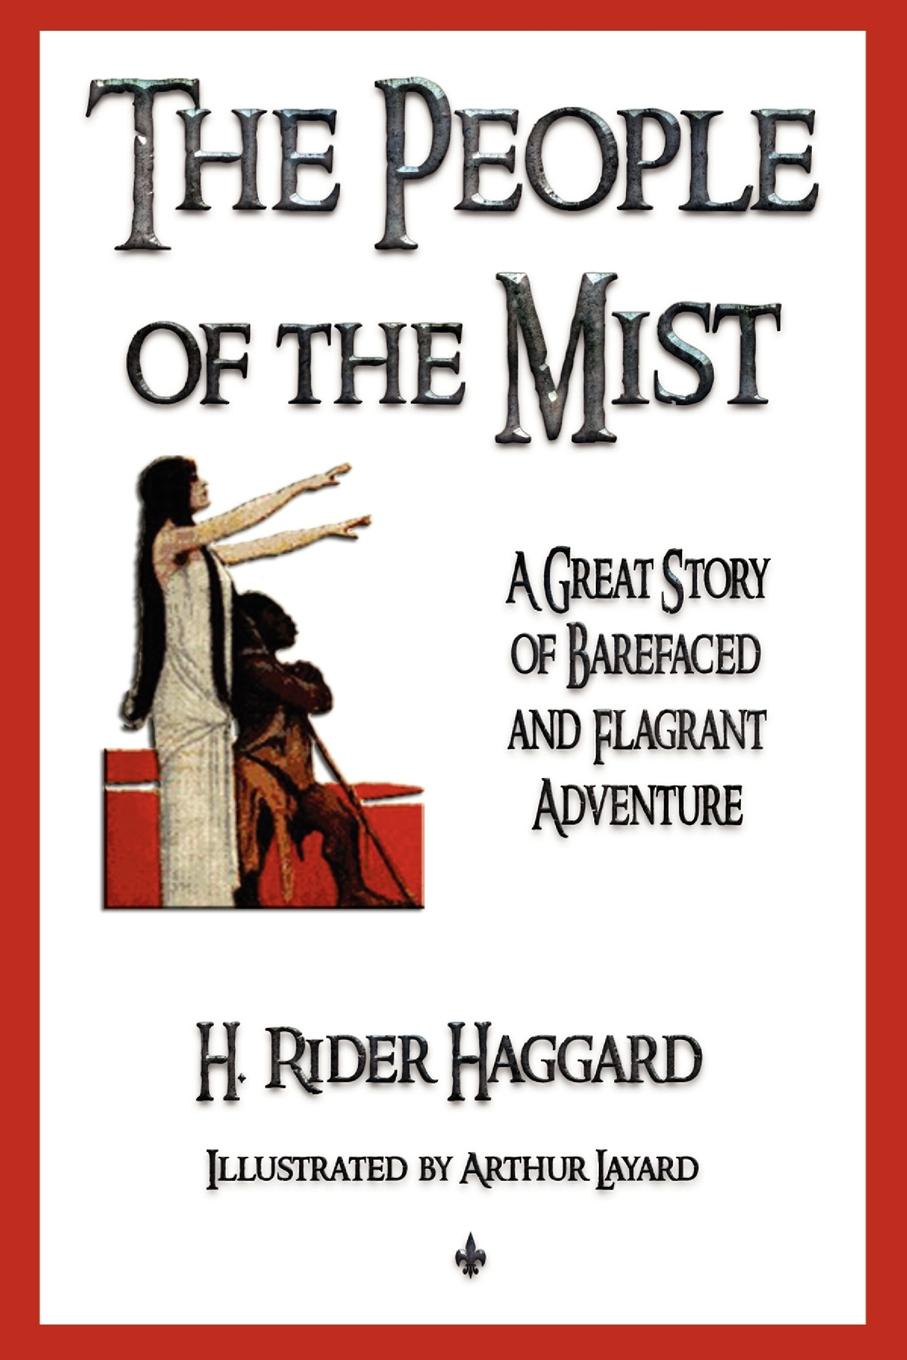 H. Rider Haggard The People of the Mist haggard henry rider the people of the mist